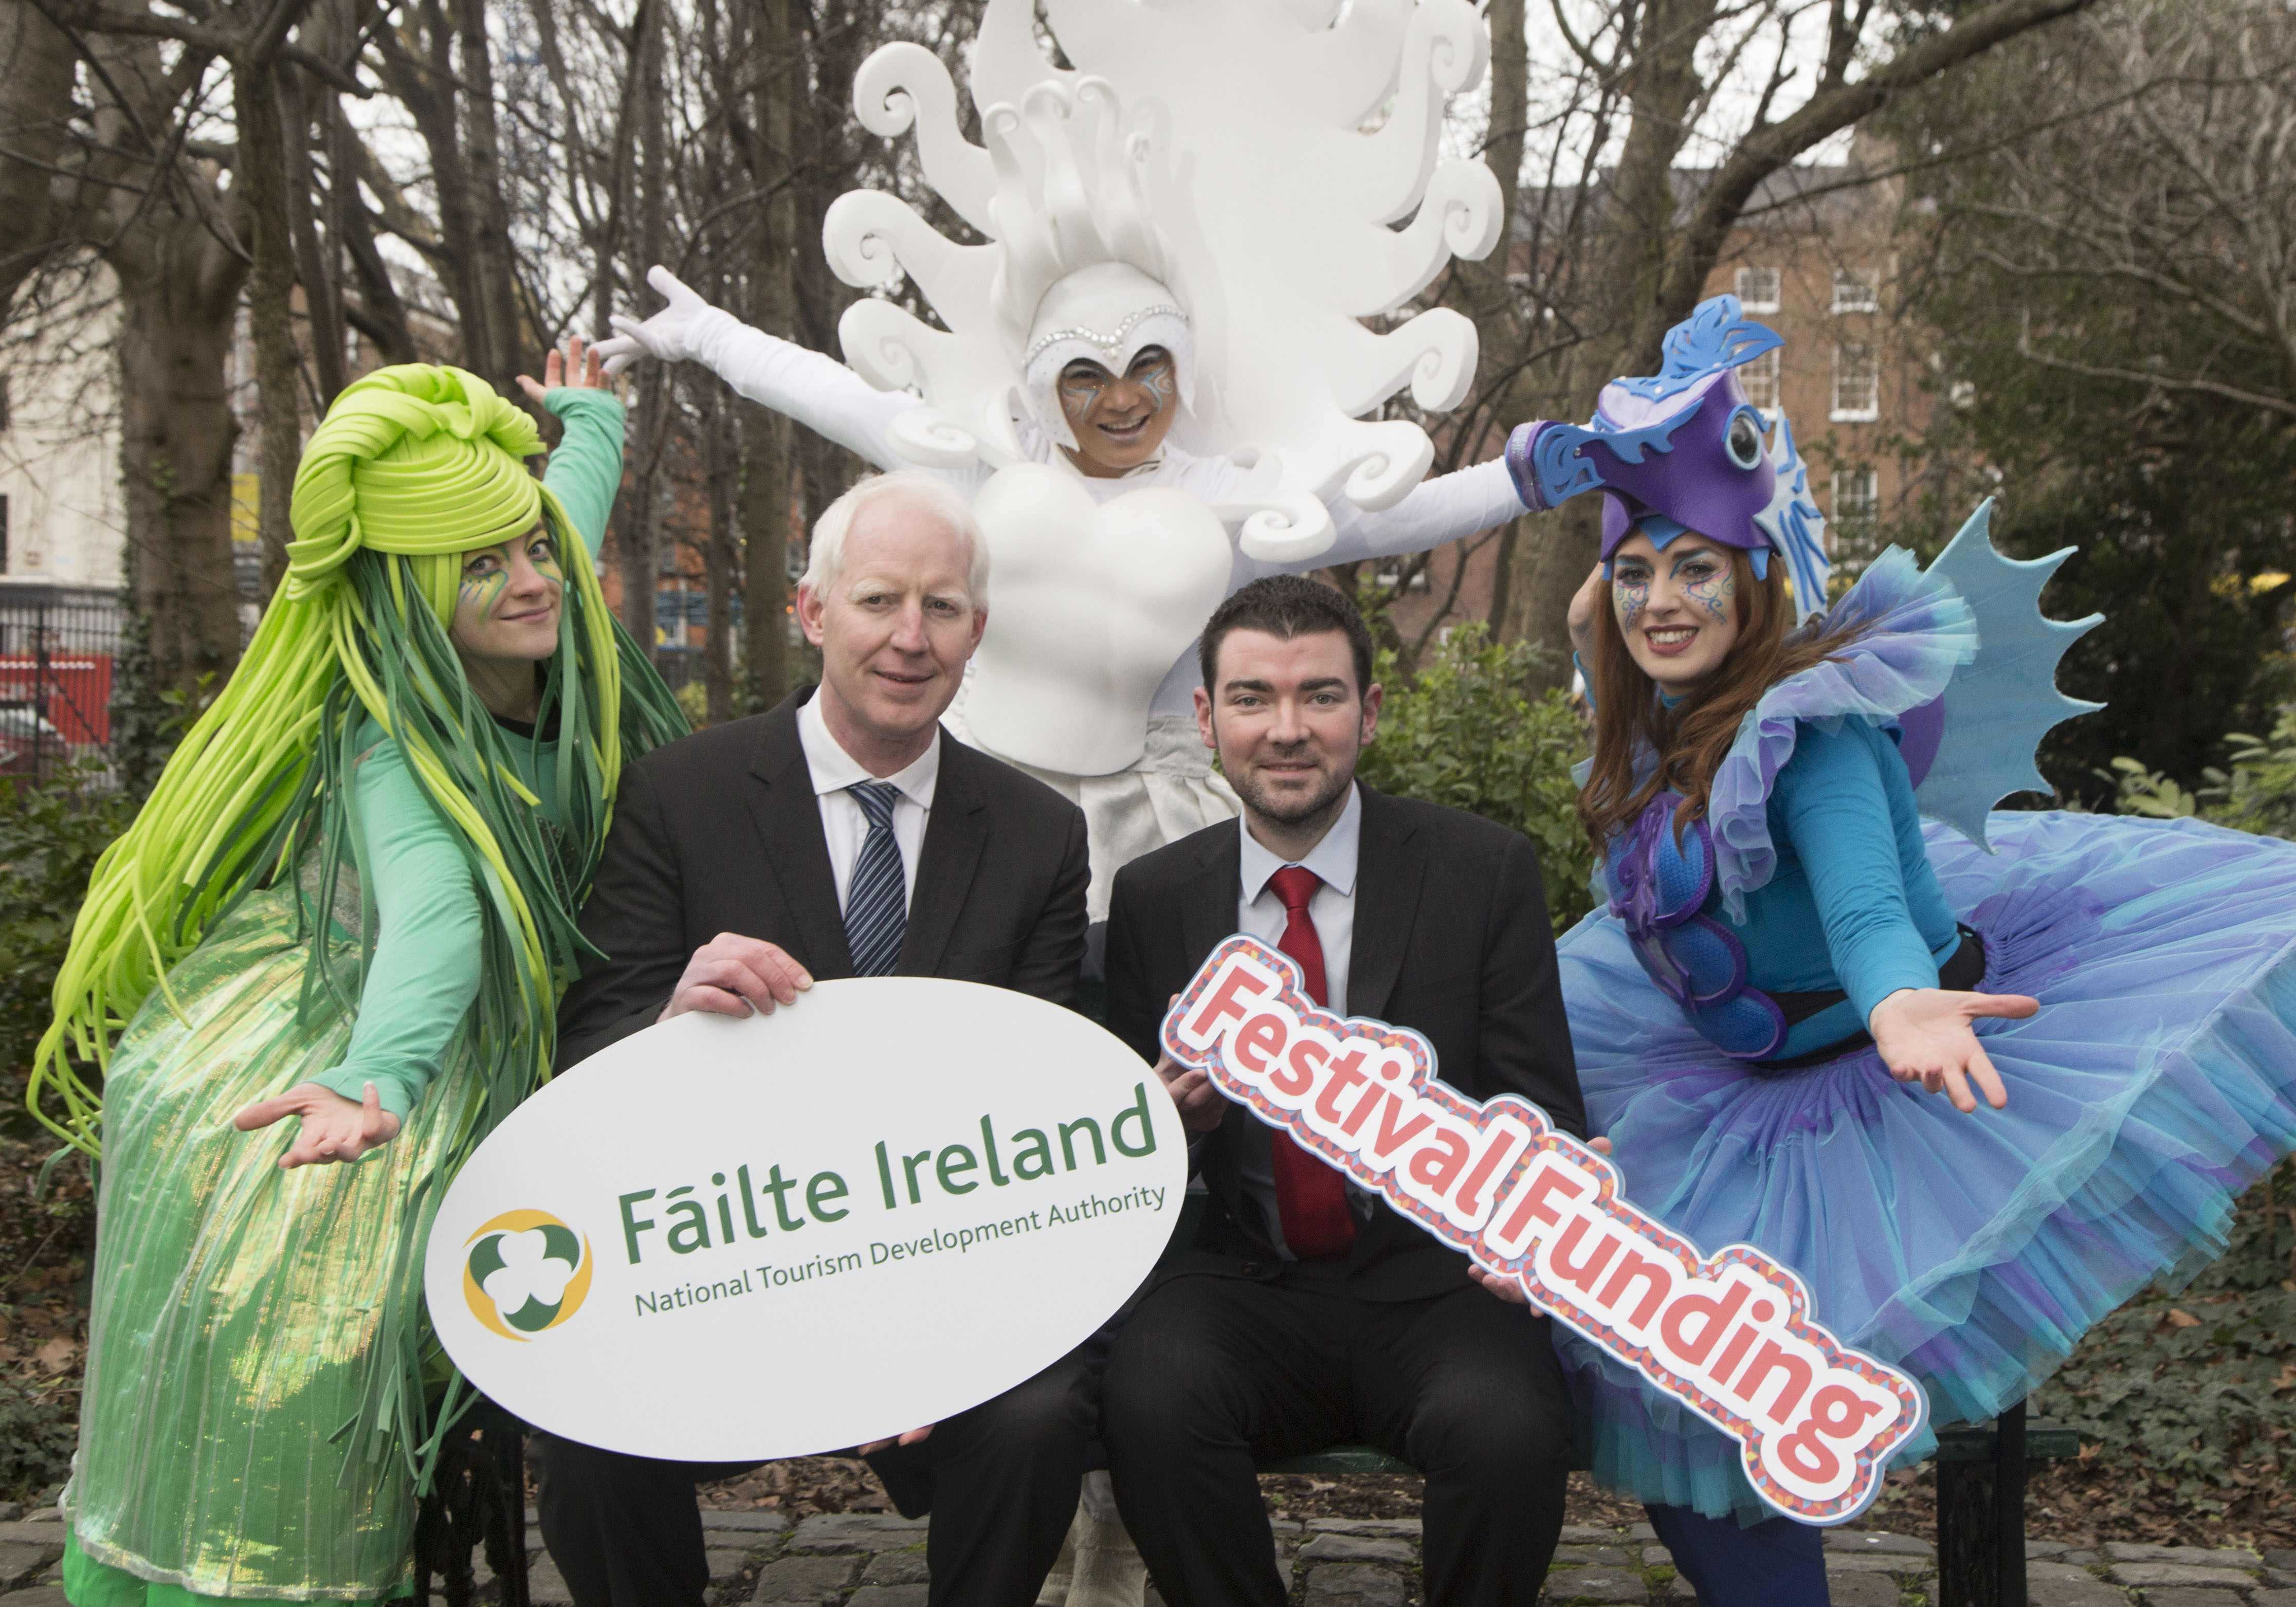 Fáilte Ireland announces funding of €3 Million for Major Festivals and Events